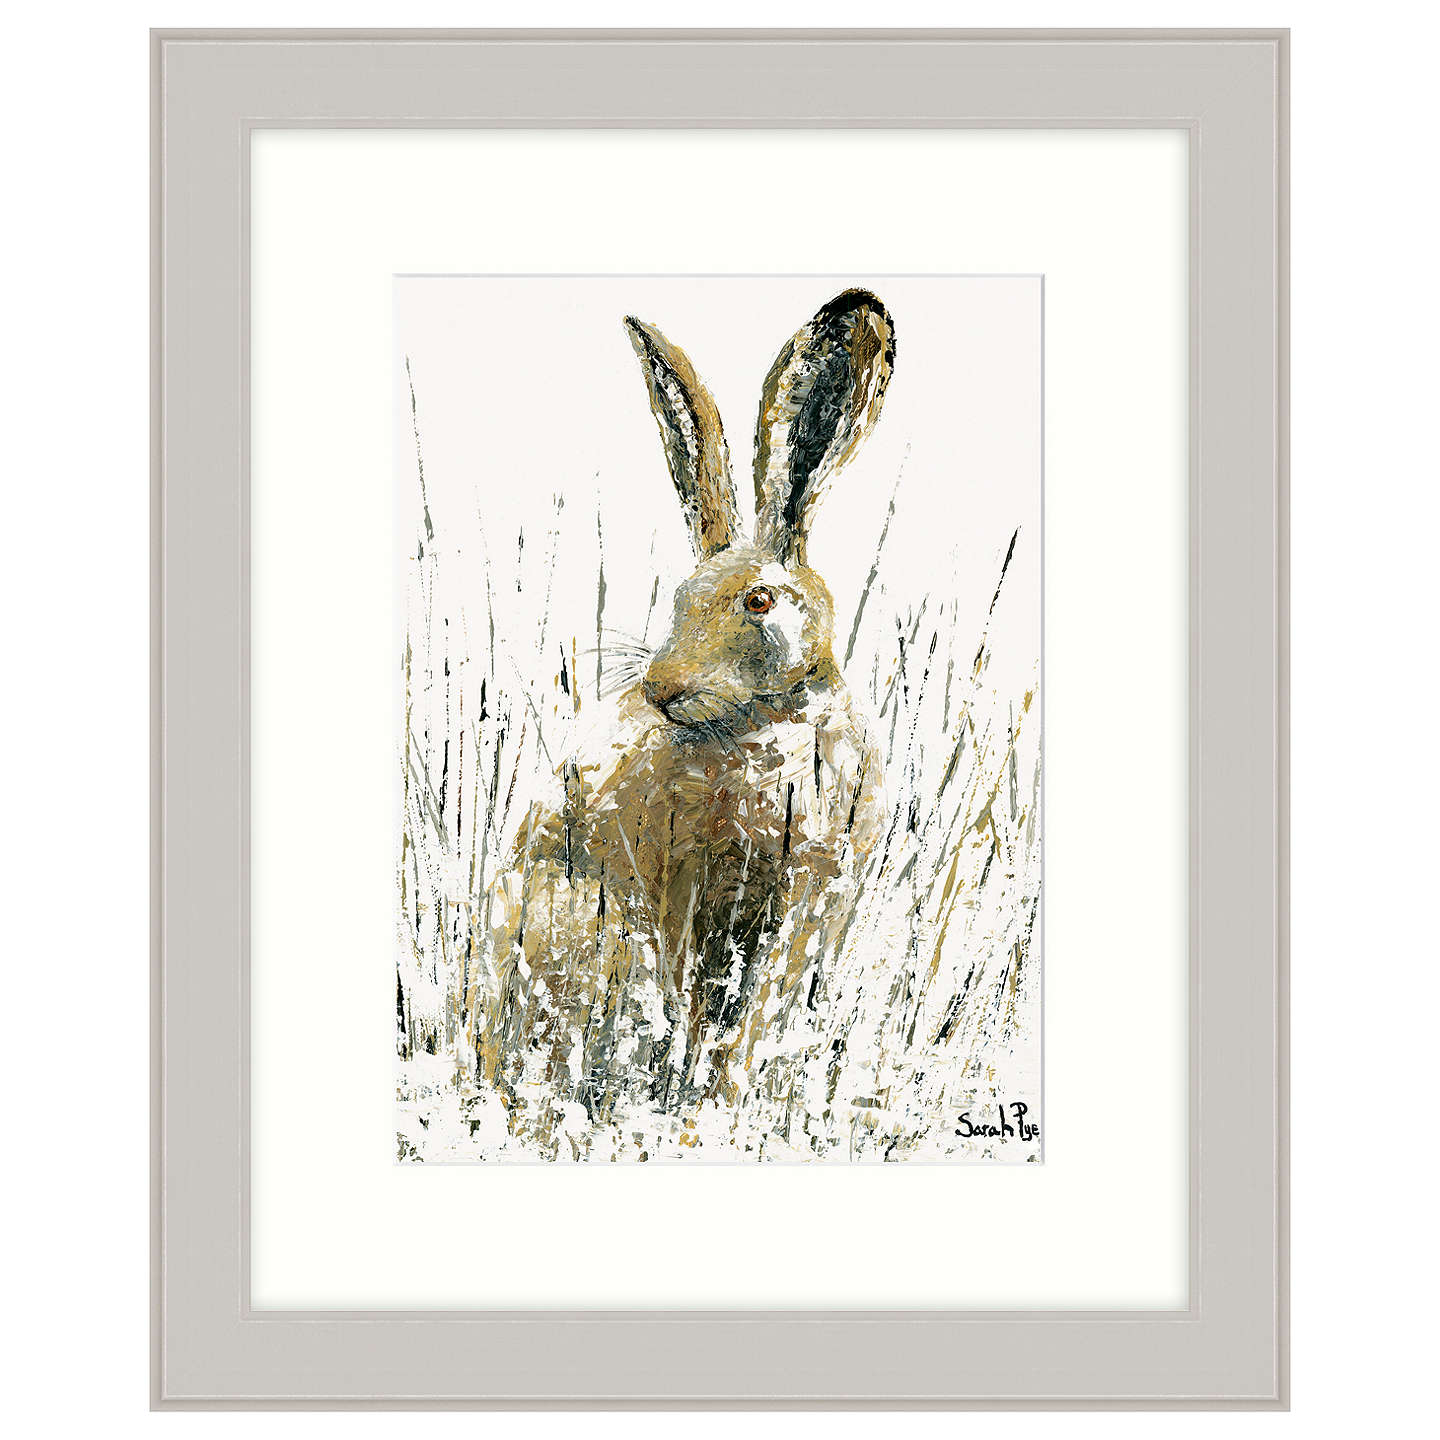 BuySarah Pye - Snow Hare Framed Print, 67 x 57cm Online at johnlewis.com